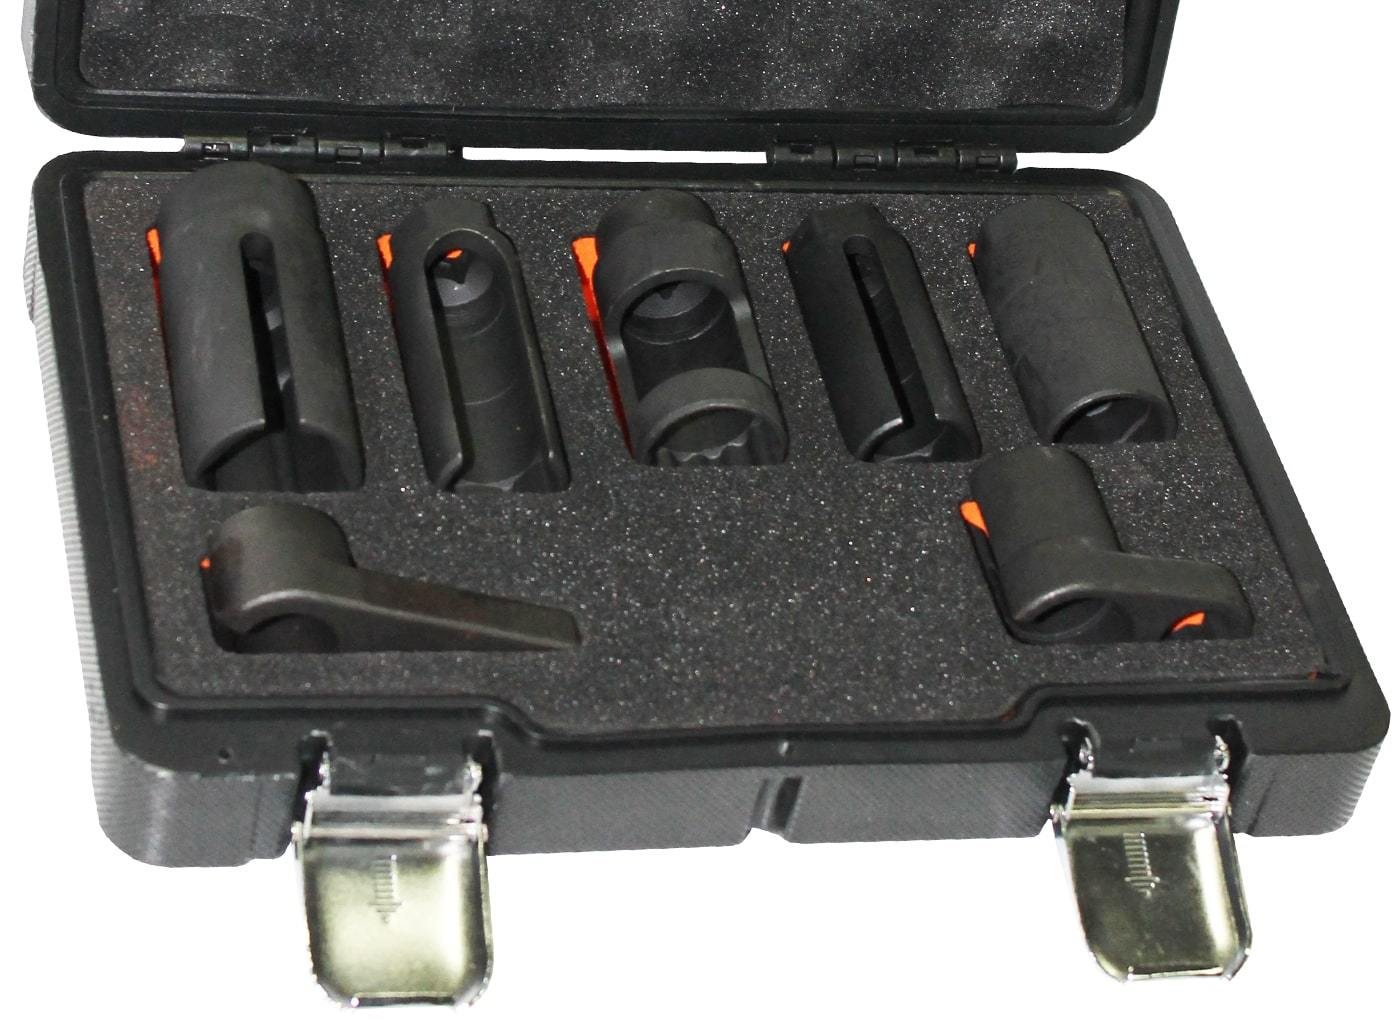 SP Tools SENSOR SOCKET SET - 7PC - SP64065